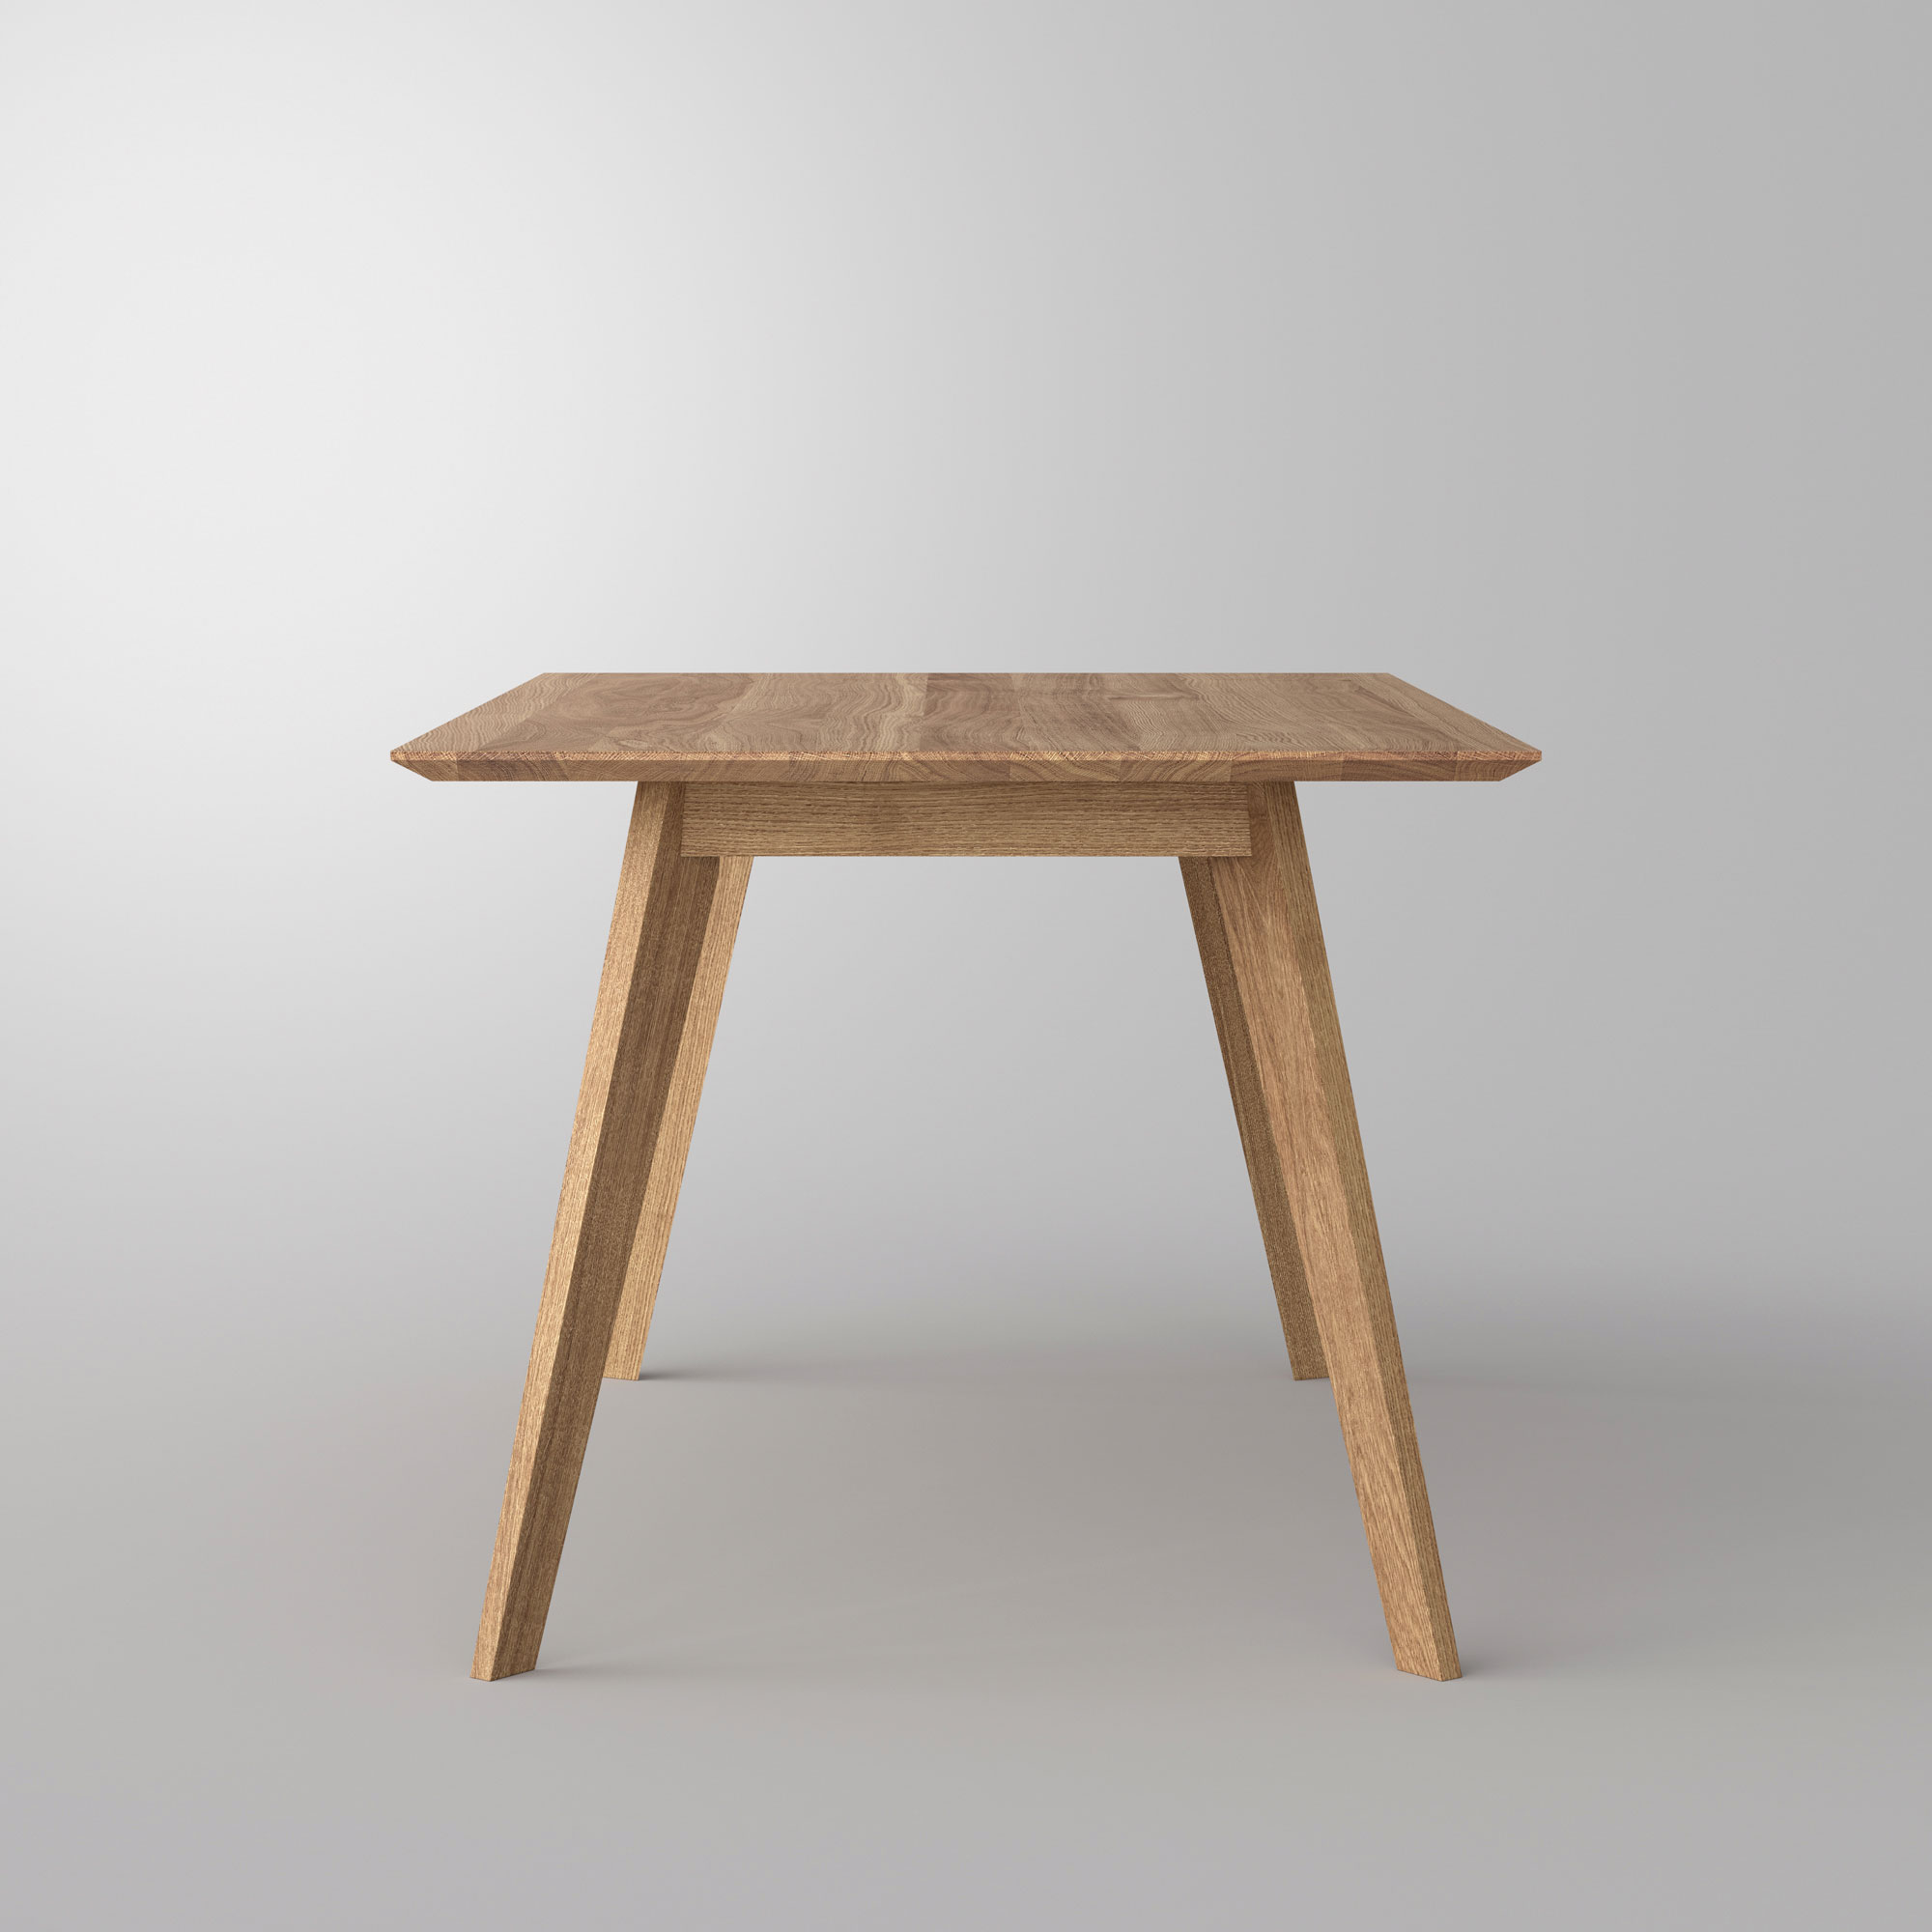 Solid Wood Dining Table CITIUS Cam6 custom made in solid wood by vitamin design